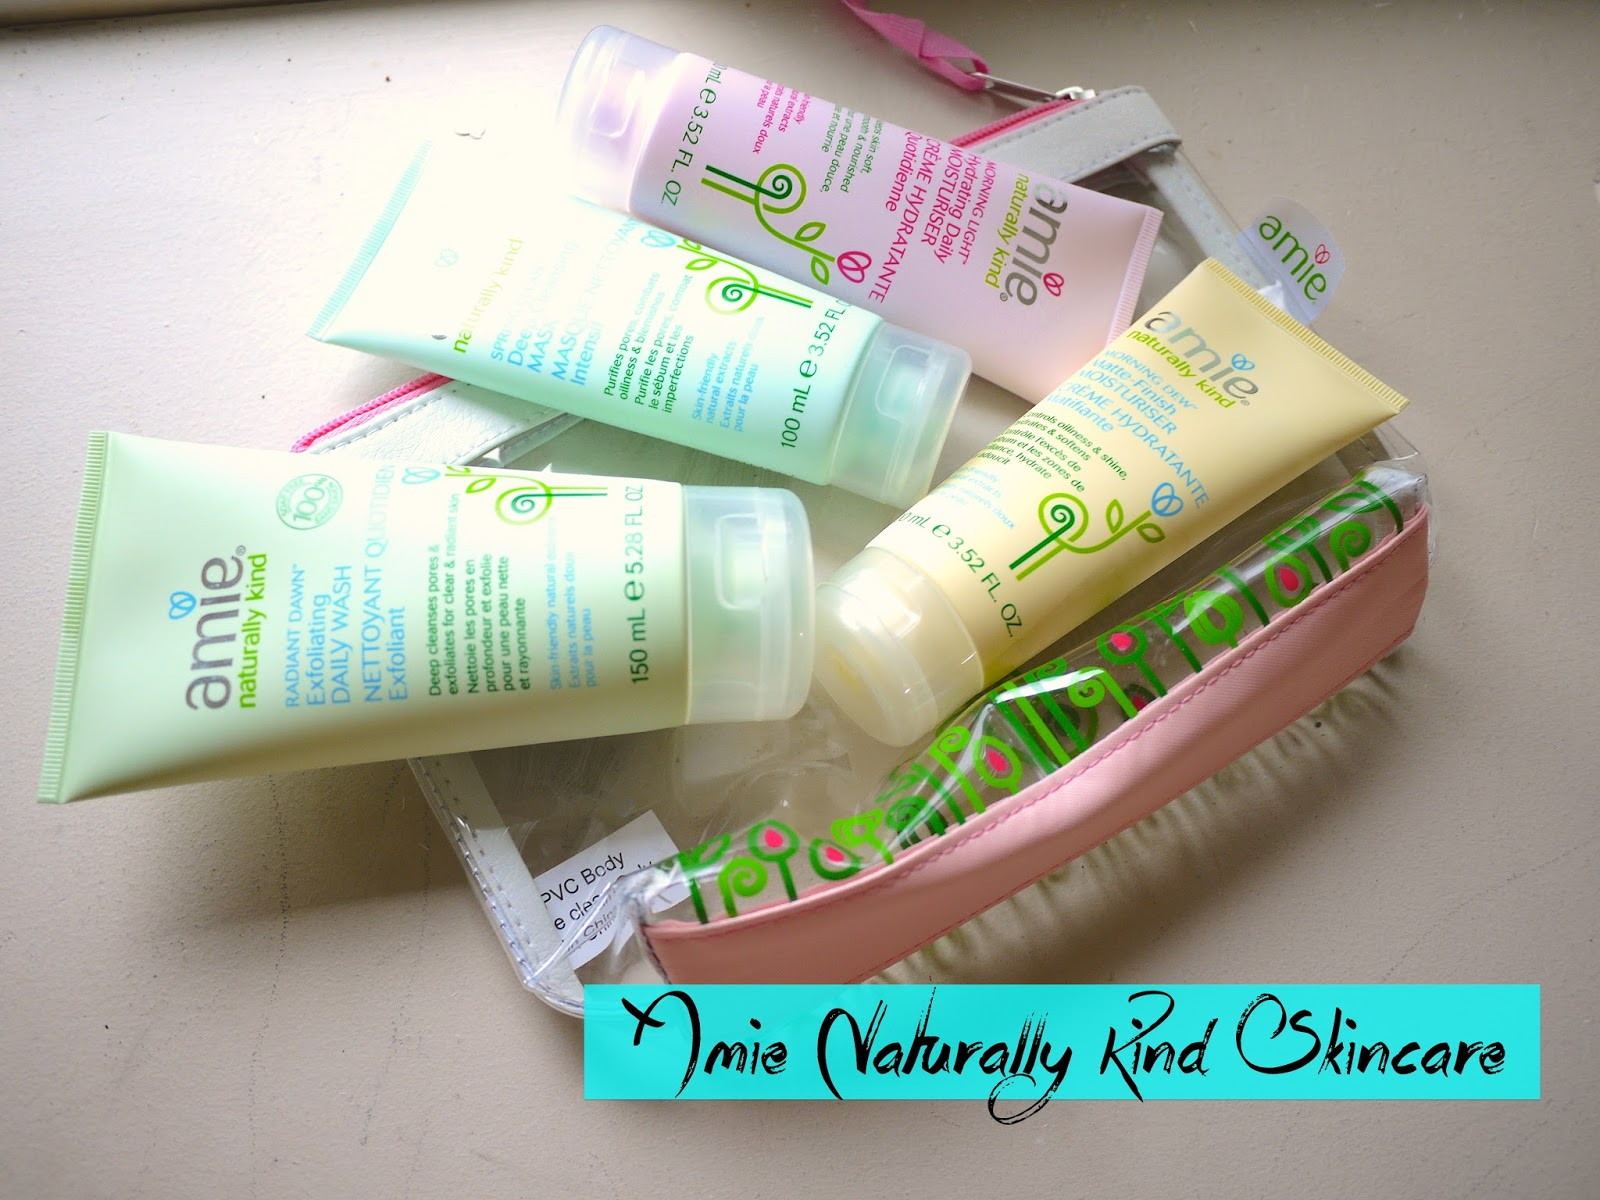 amie naturally kind skincare review